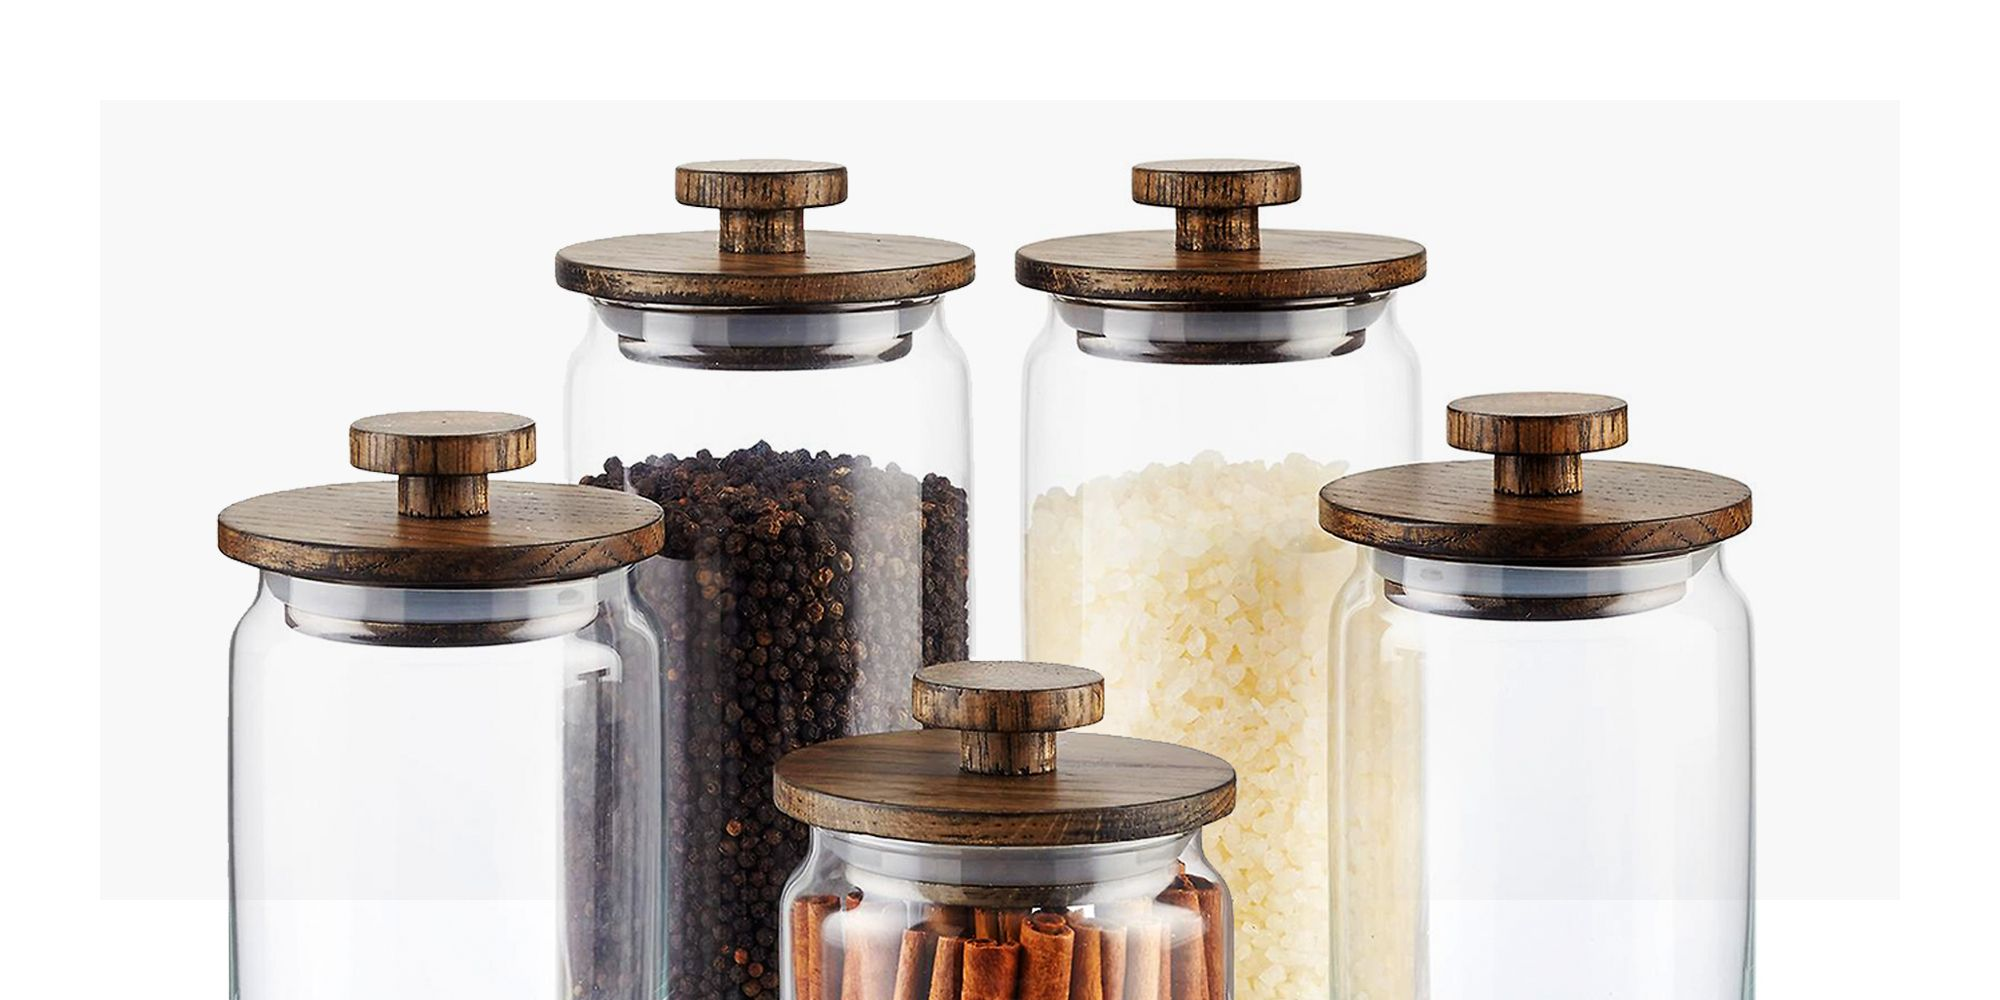 10 Best Apothecary Jars For 2018 Cheap Apothecary Jars With Glass Plastic Options